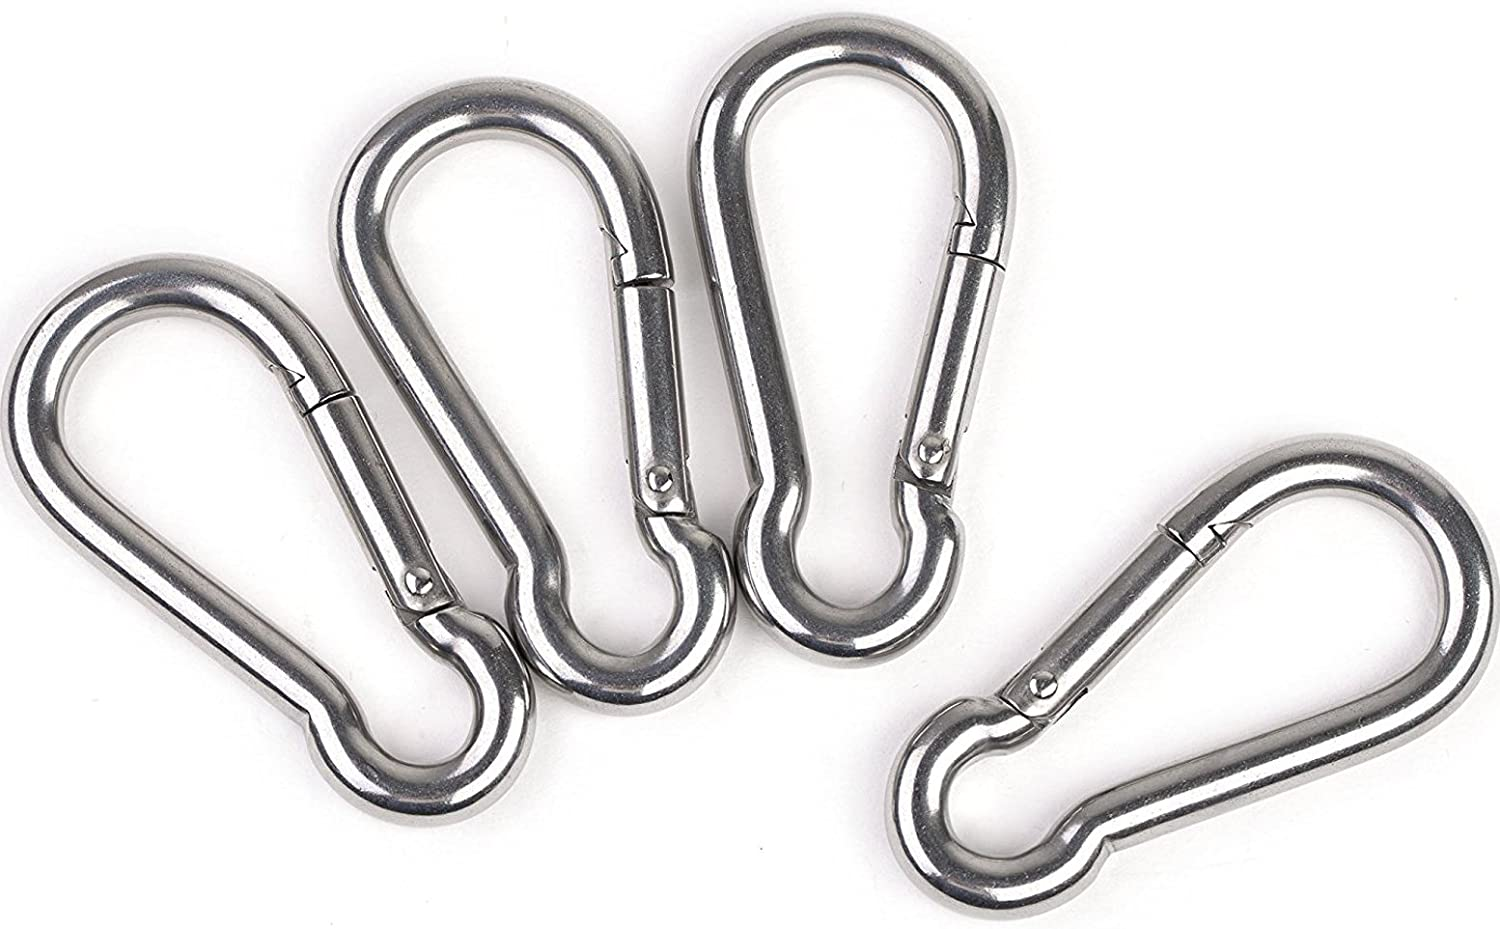 SSACK 8pcs Set 304 Stainless Steel Spring Snap Hook Carabiner Clips 3inch 80mm